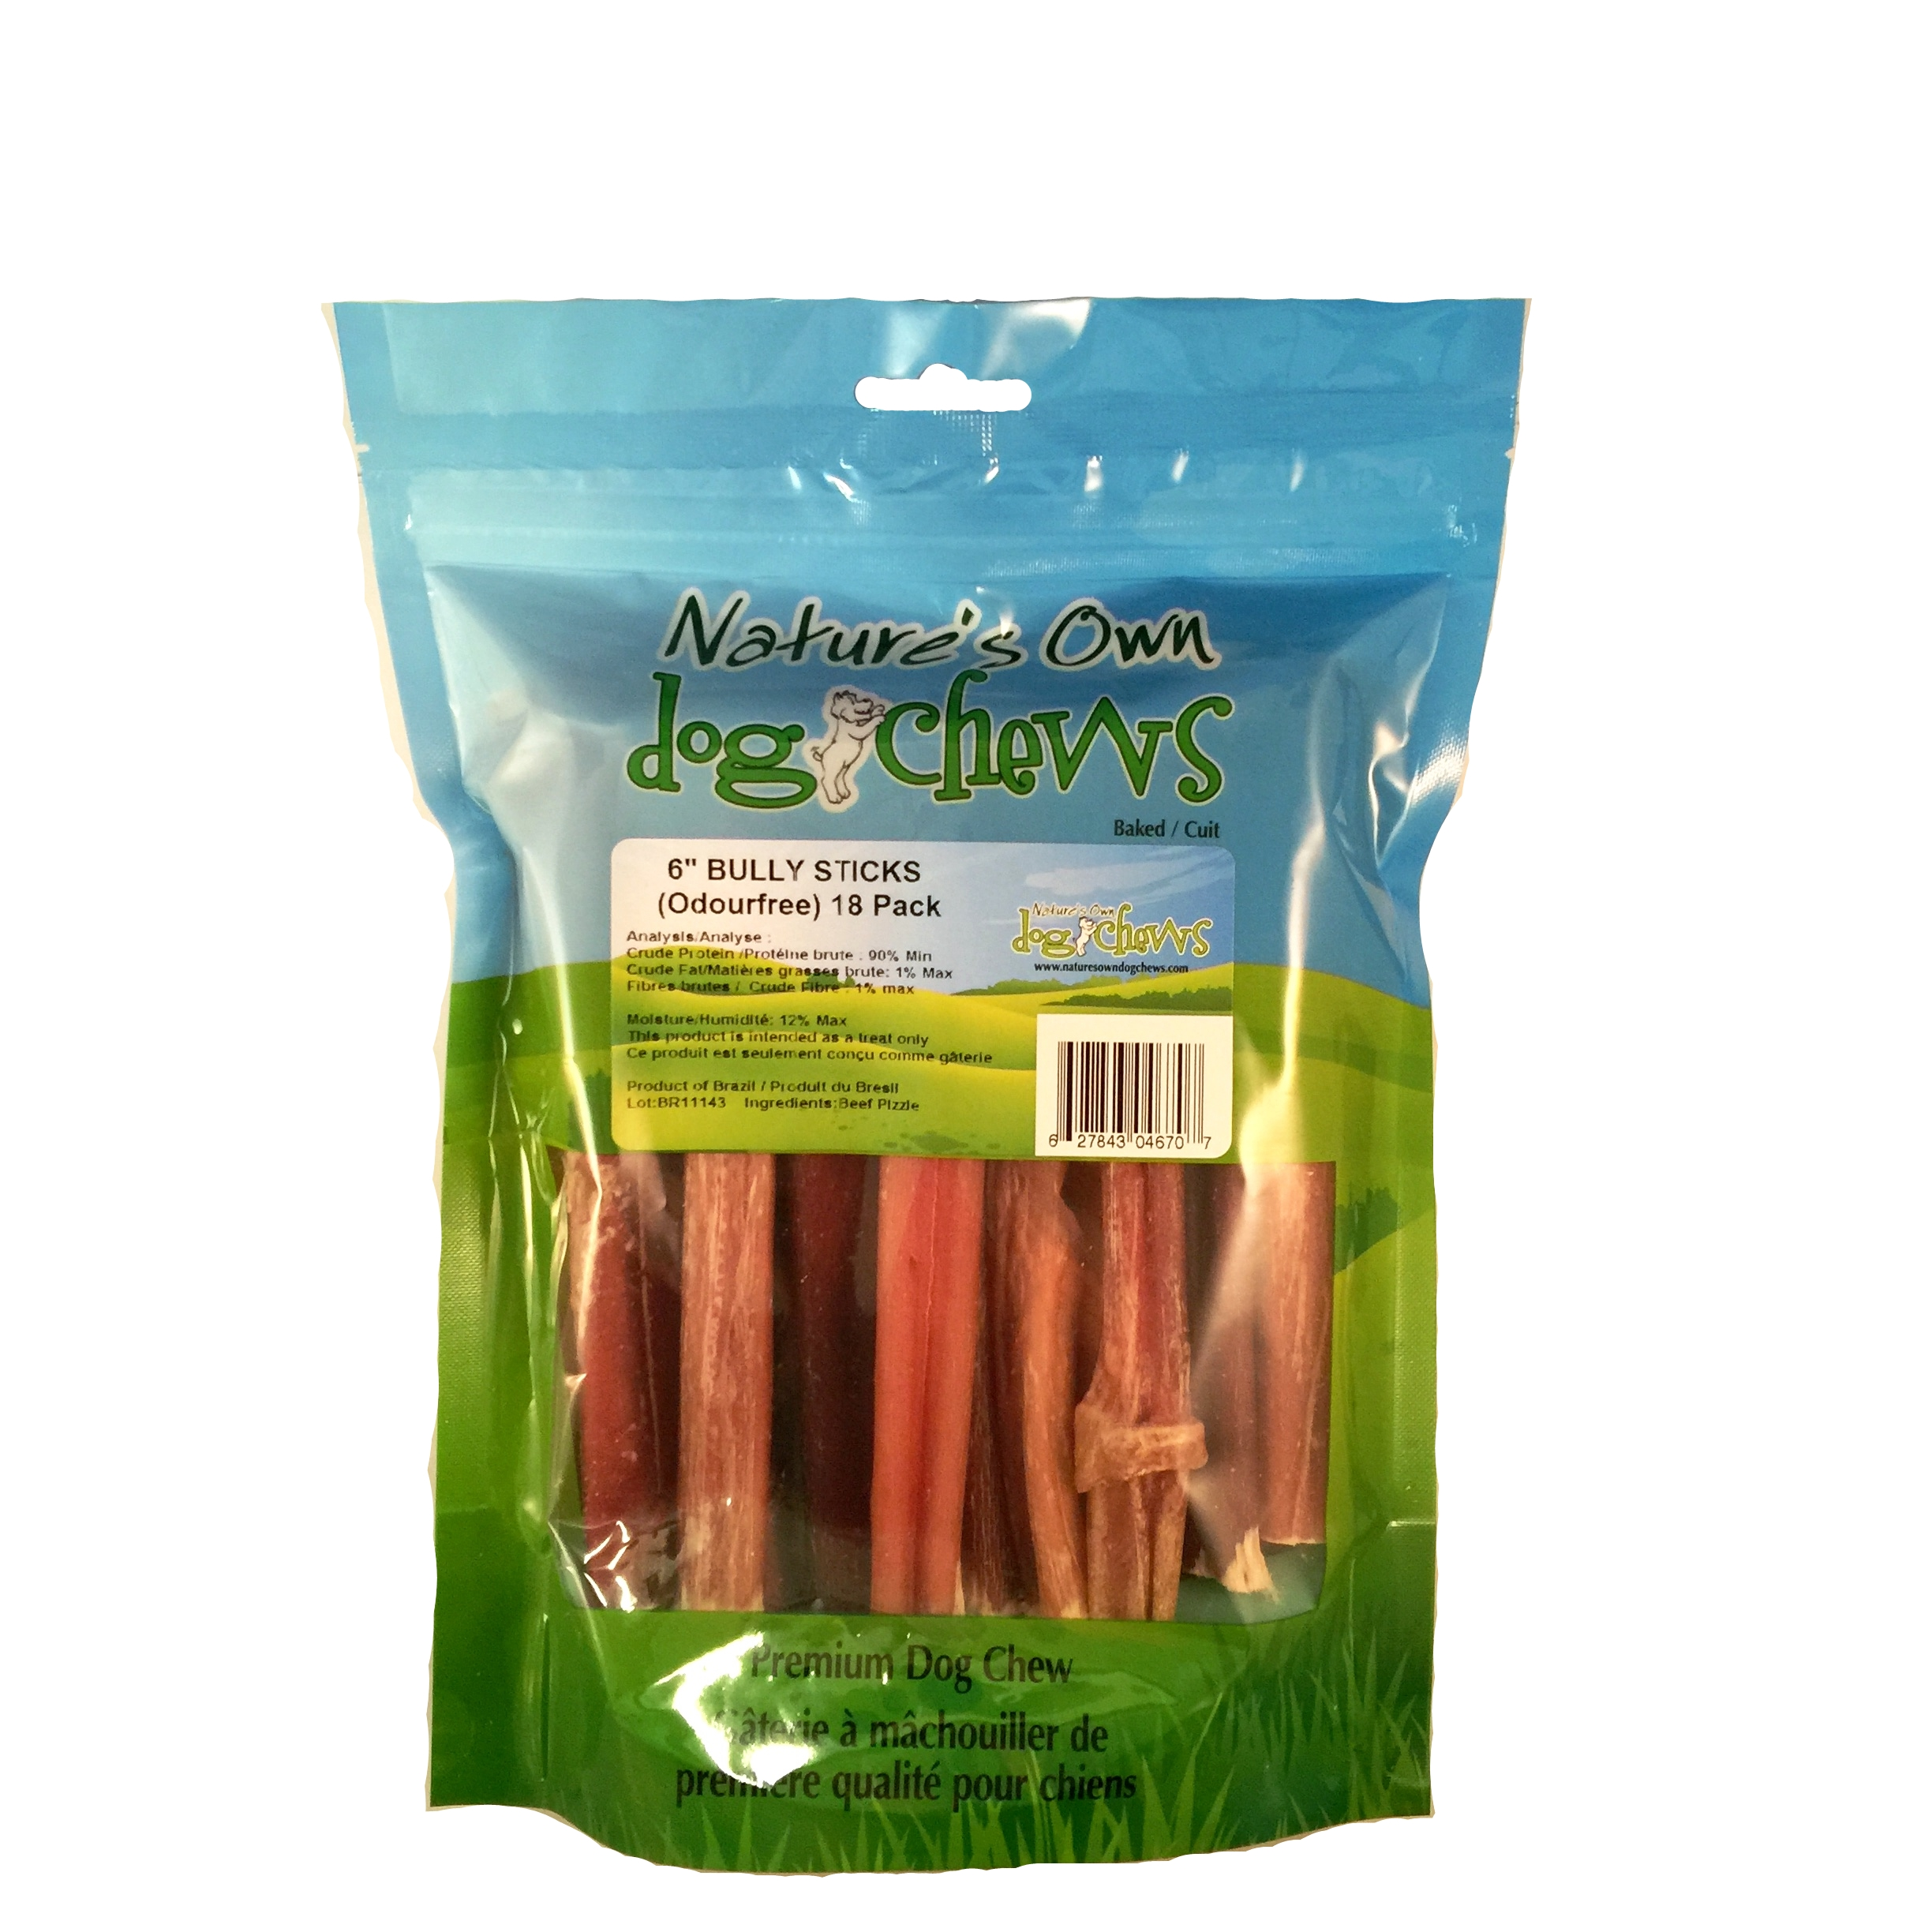 bully sticks nature s own dog chews. Black Bedroom Furniture Sets. Home Design Ideas